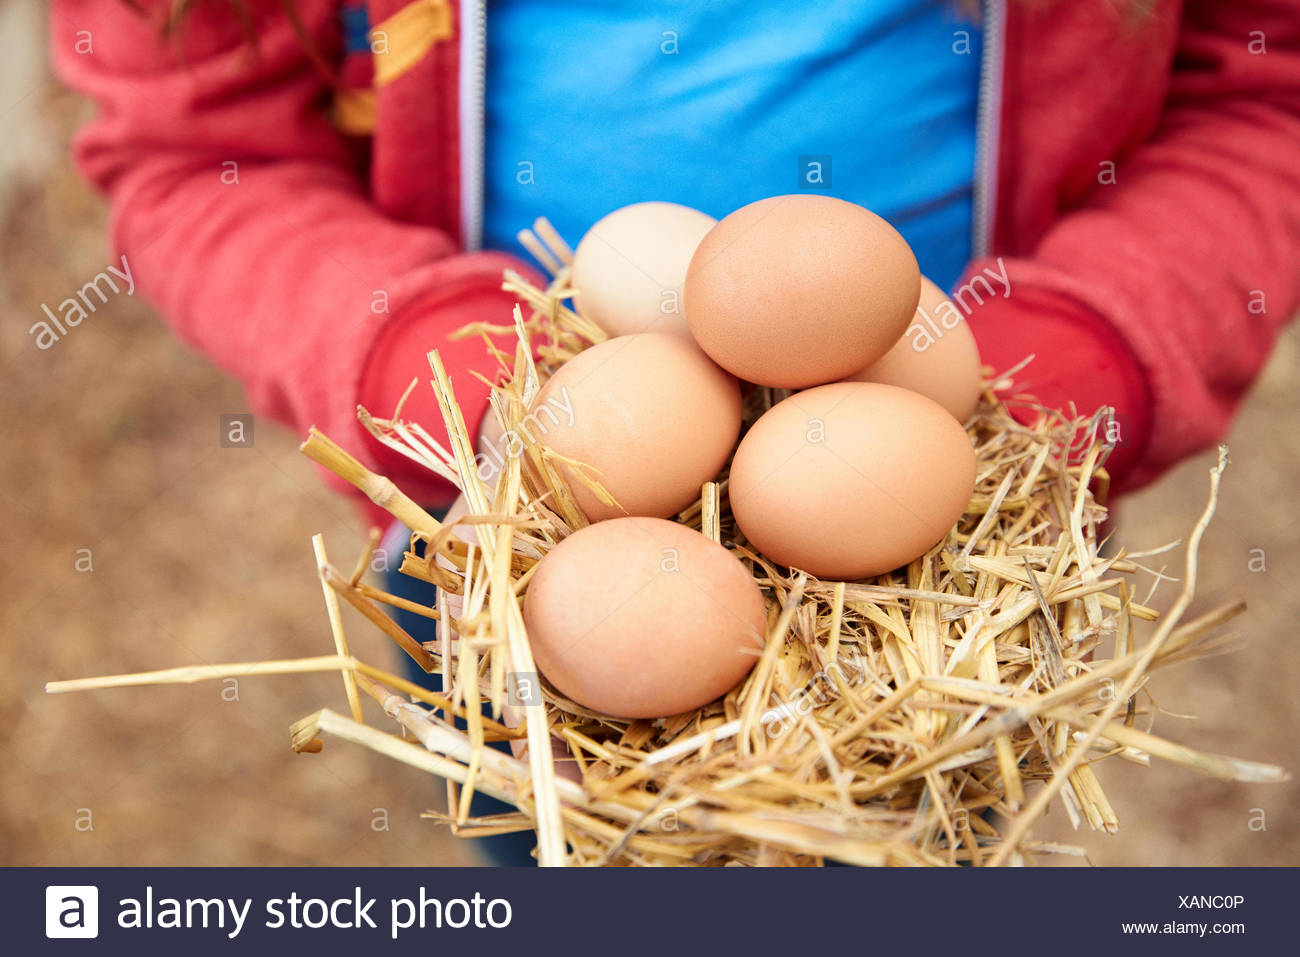 Close up girl holding fresh, oeufs brun organique Photo Stock